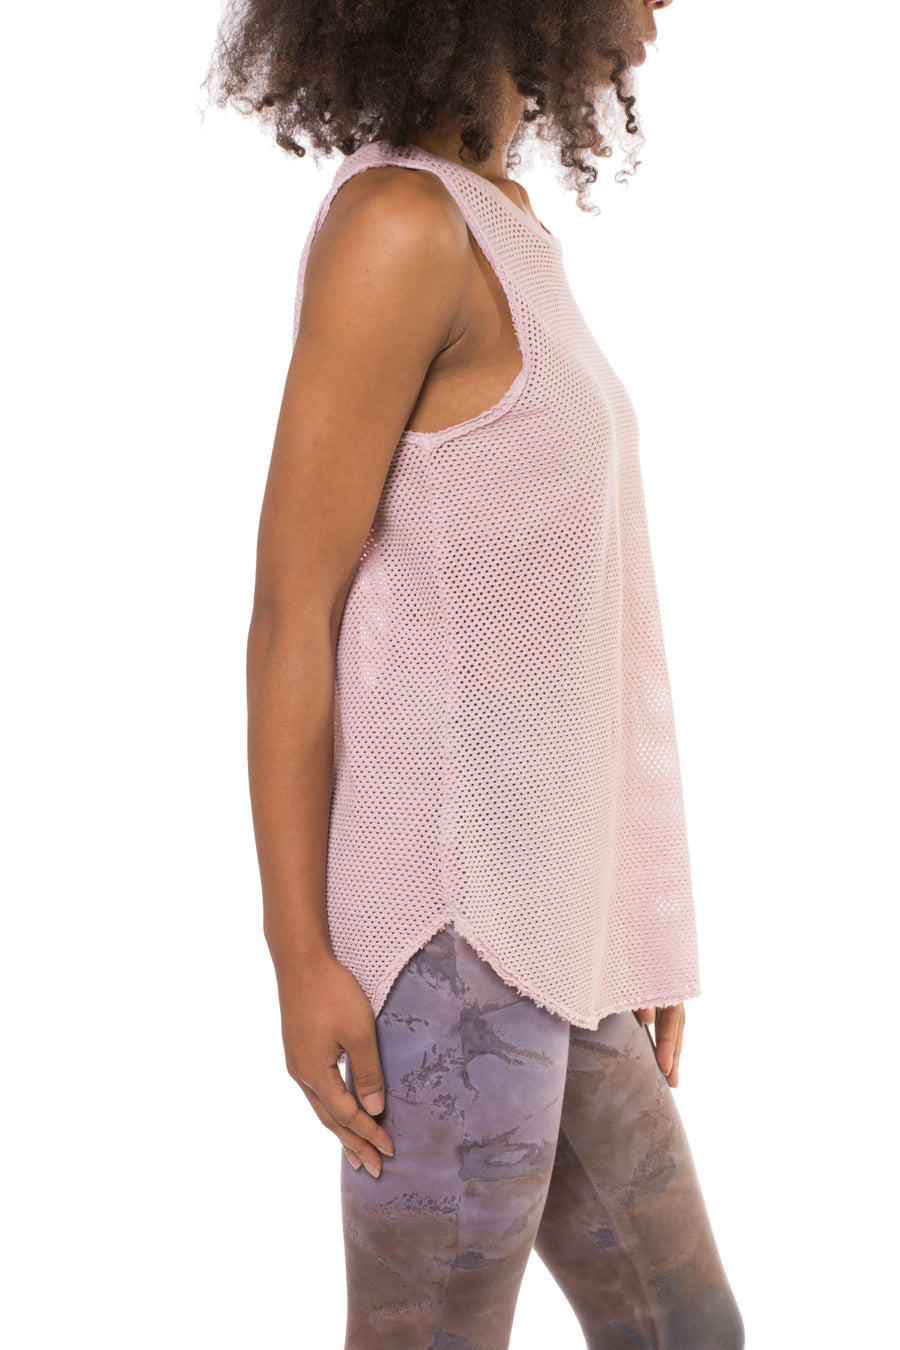 Canal Tank (Style ERWKN06, Blush) by Electric & Rose